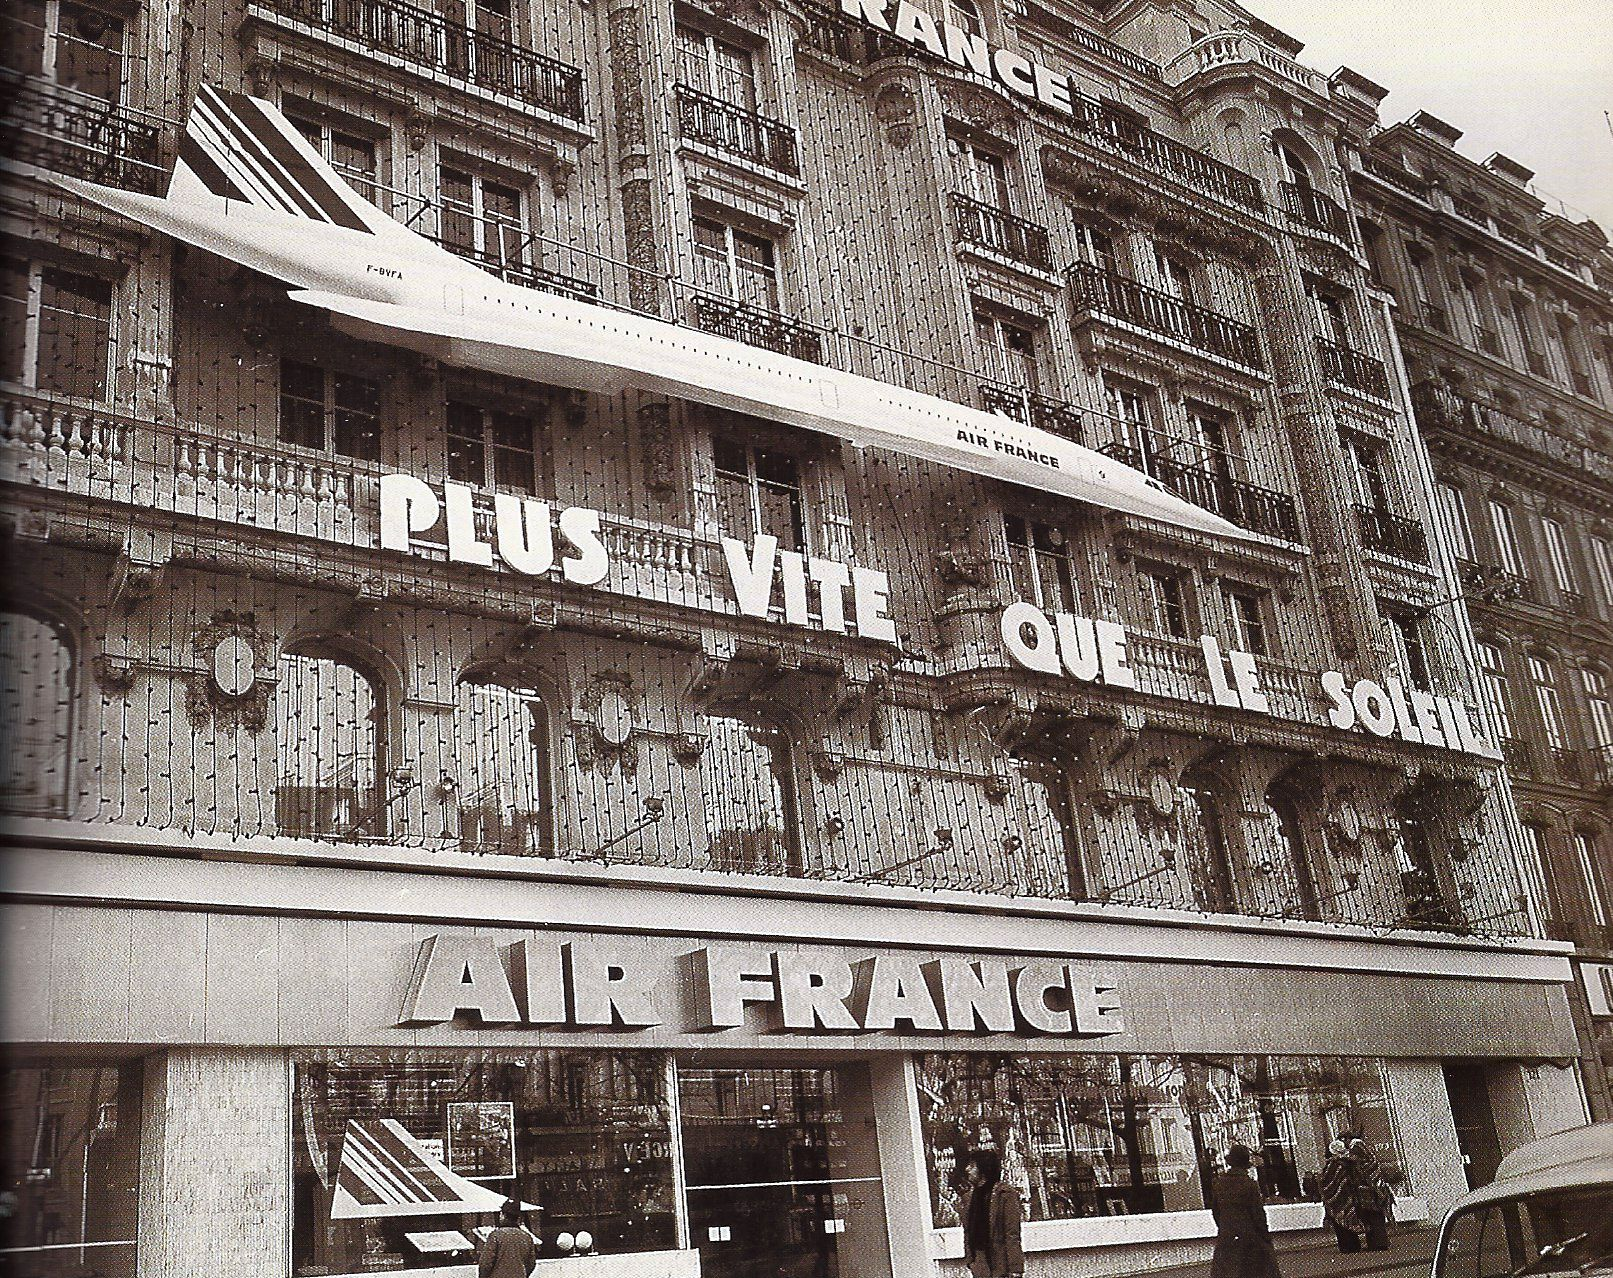 Air France Concorde Advertising Champs Elysees Ticket Office Air France Avenue Des Champs Elysees Paris